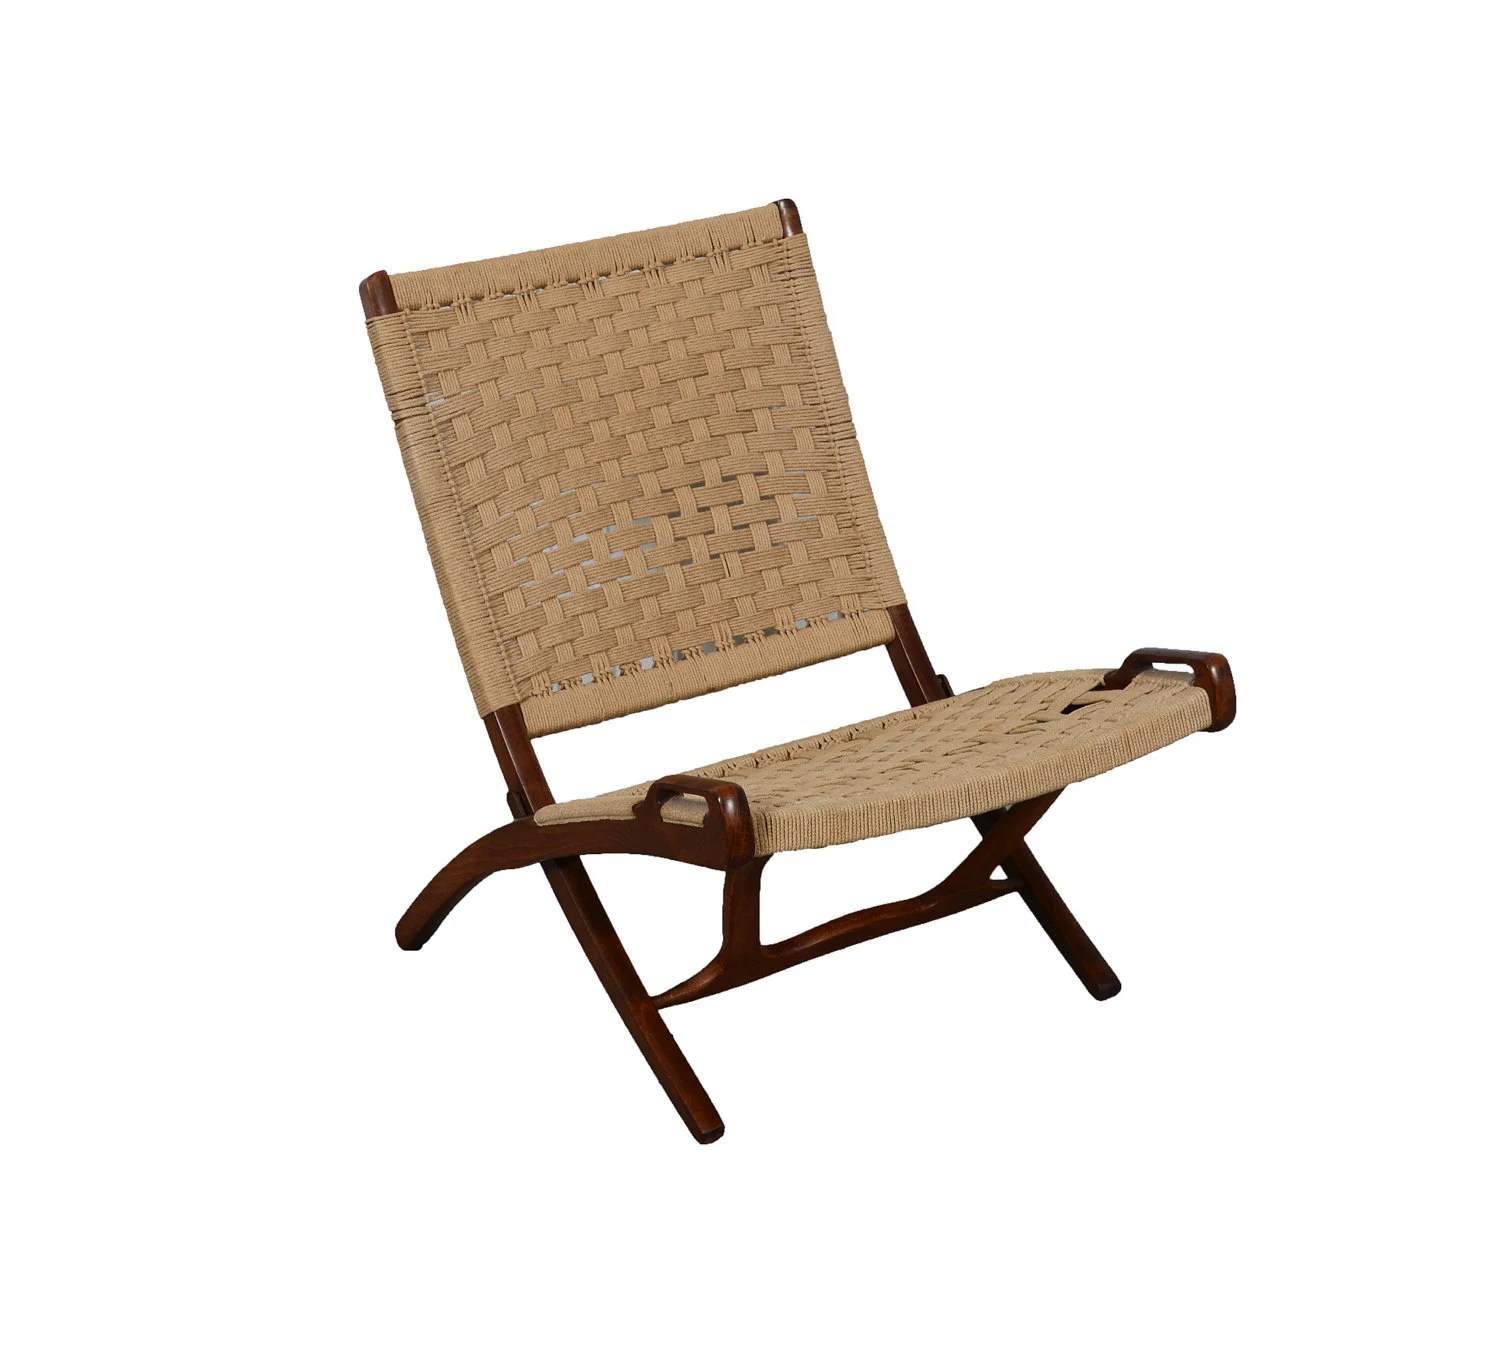 Hans Wegner Folding Chair Hans Wegner Style Folding Chair Danish Modern